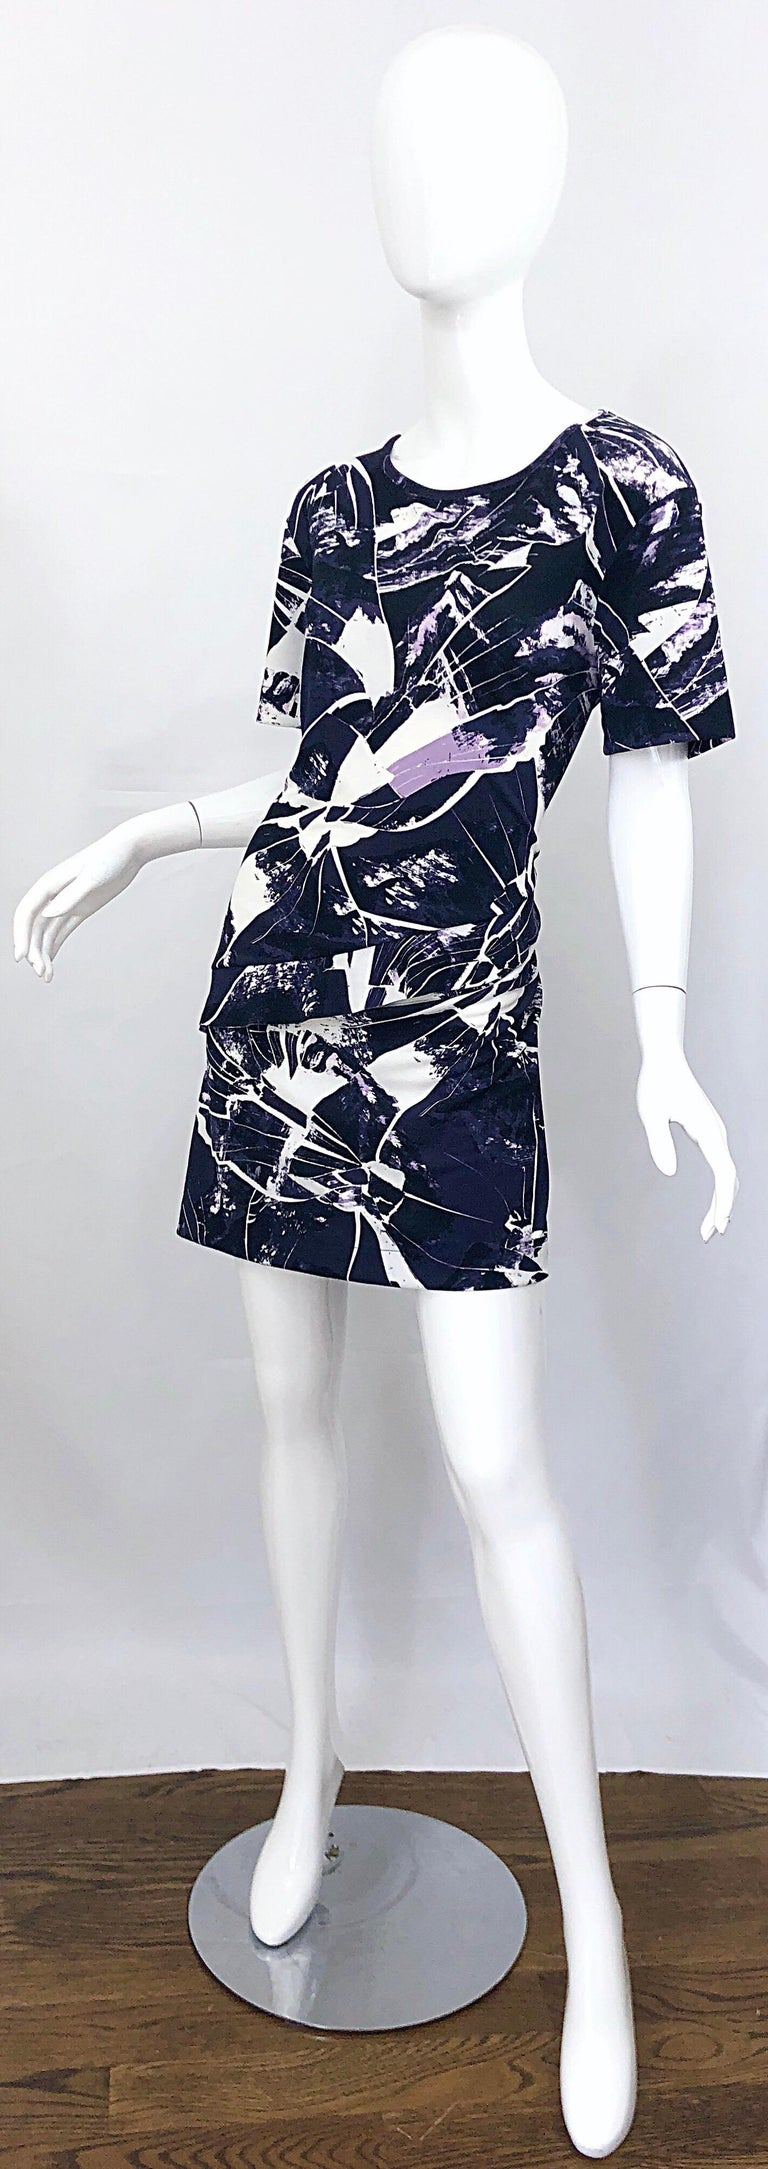 Women's Vintage Kenzo Large Size 1990s Abstract Print Navy Blue + Purple 90s Mini Dress For Sale